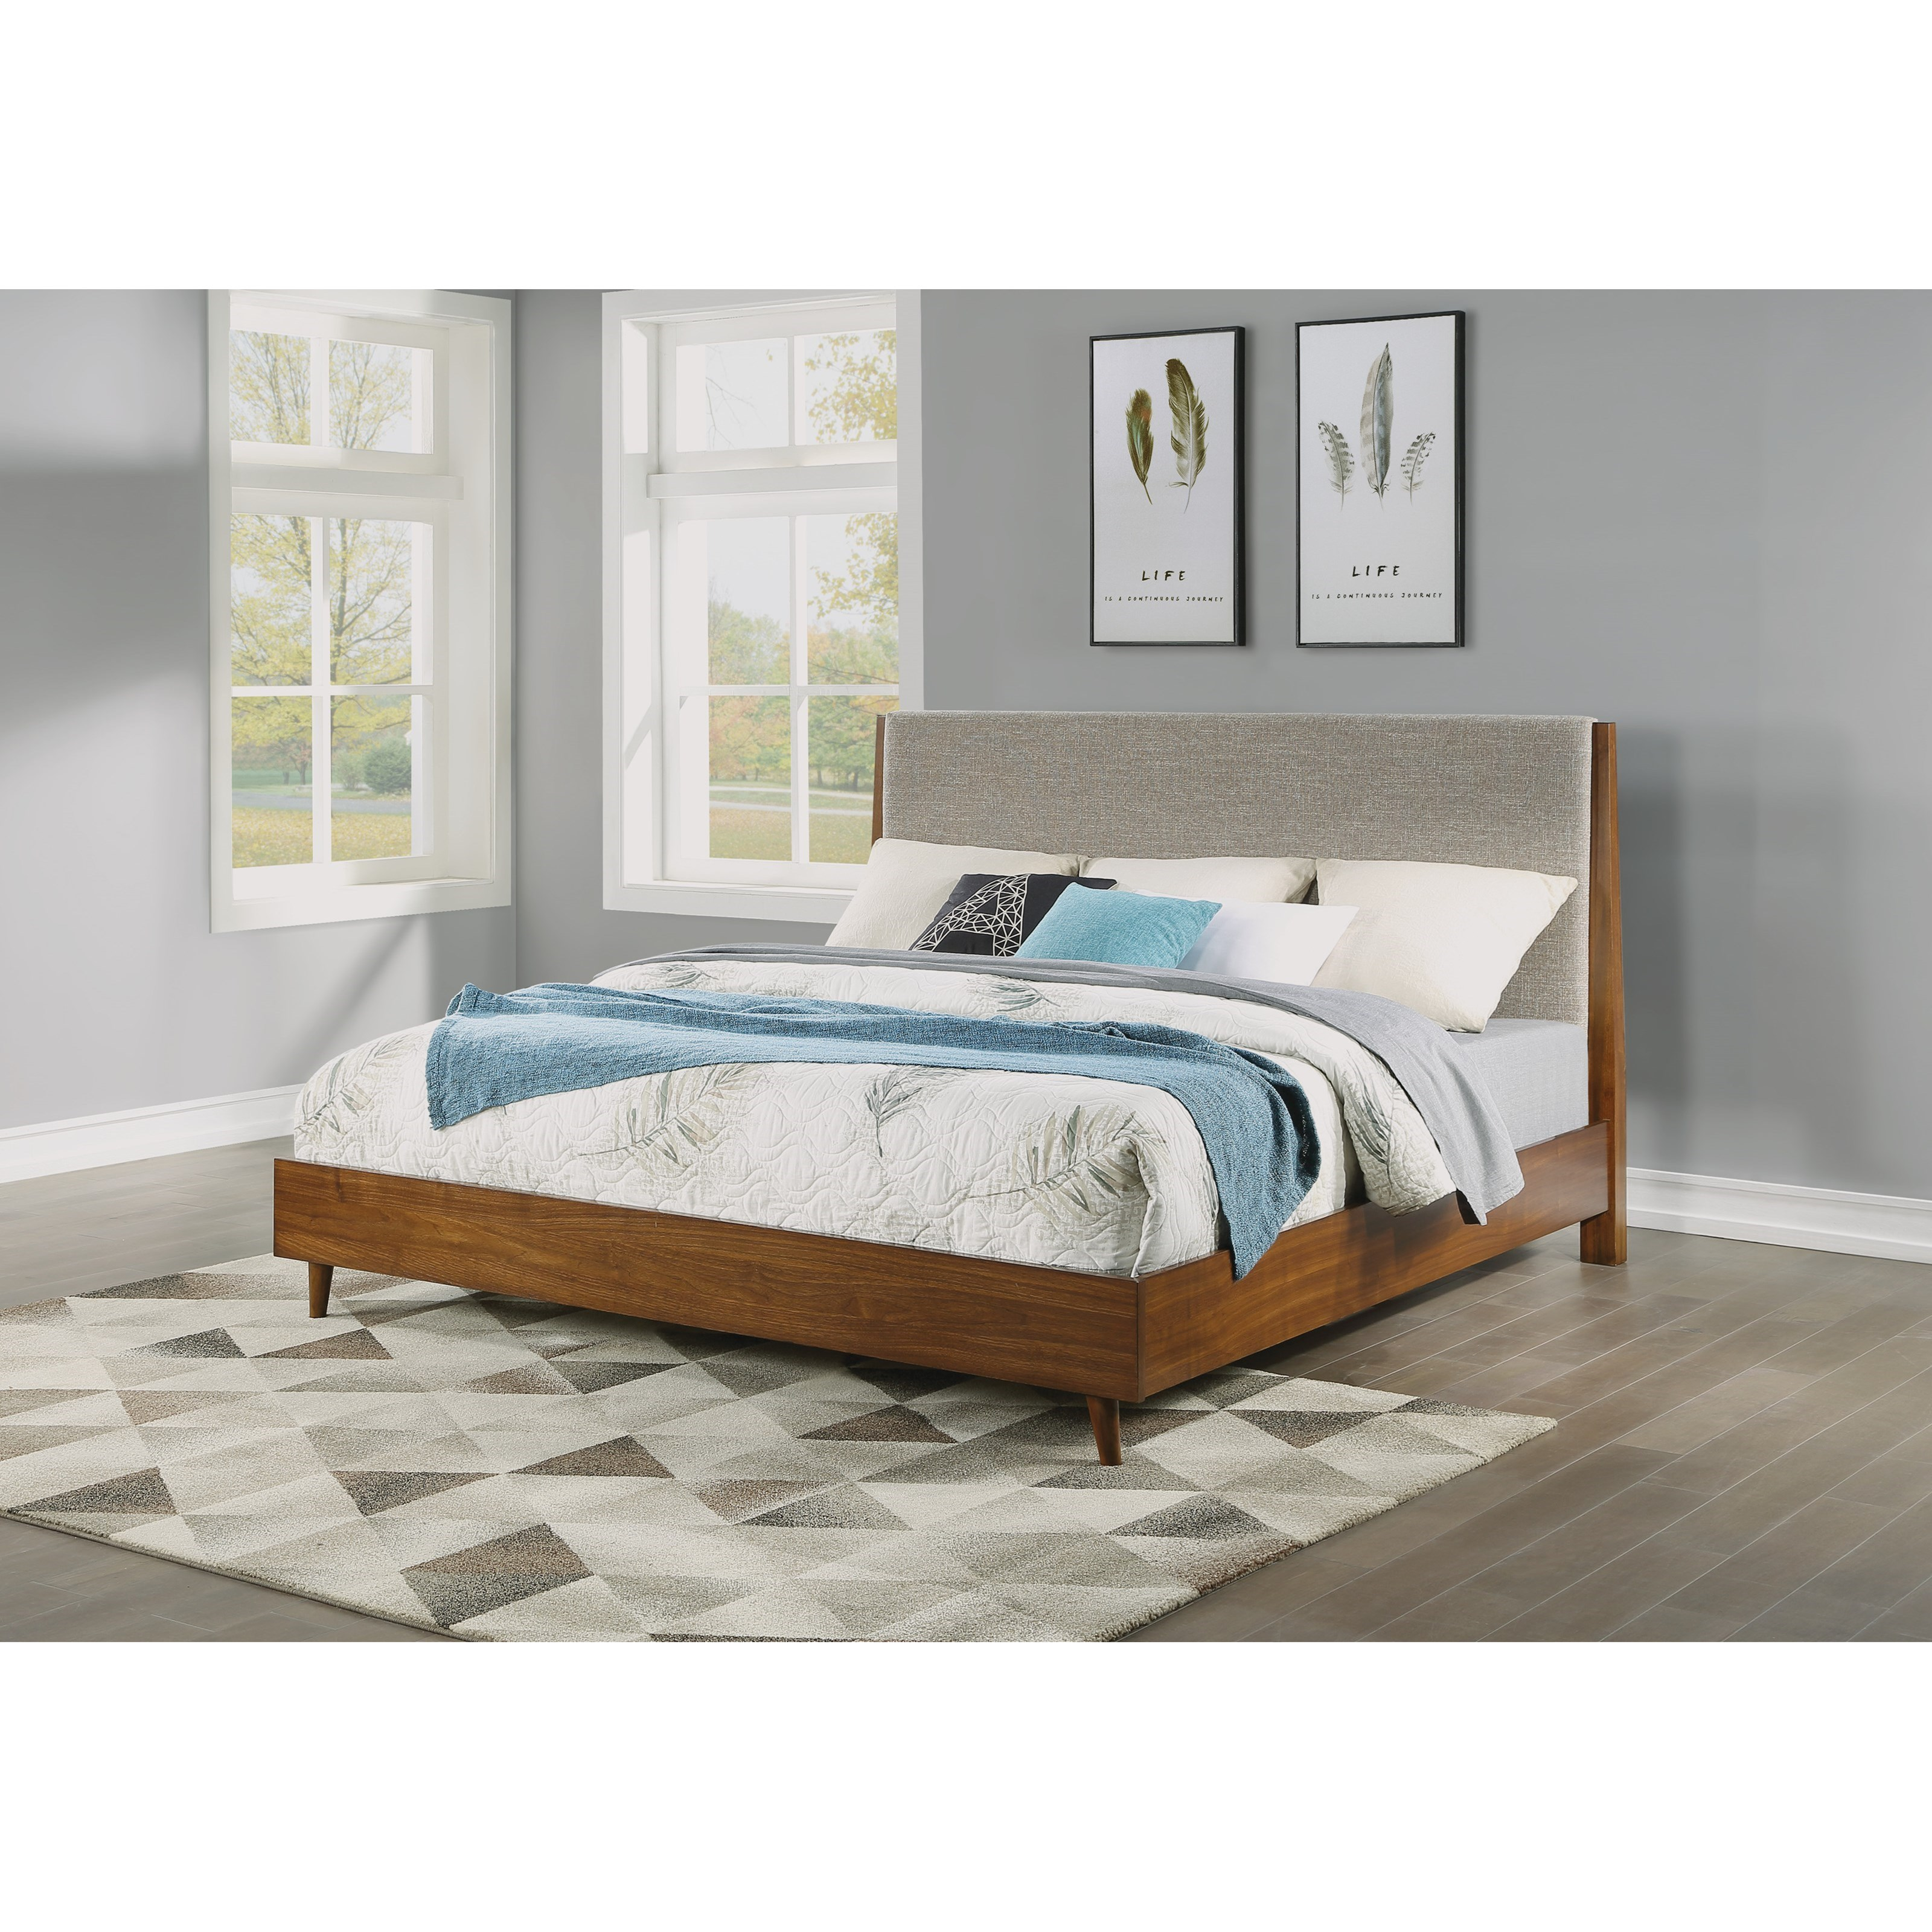 Flexsteel Wynwood Collection Ludwig Mid Century Modern California King Upholstered Bed With Platform Frame Fisher Home Furnishings Upholstered Beds